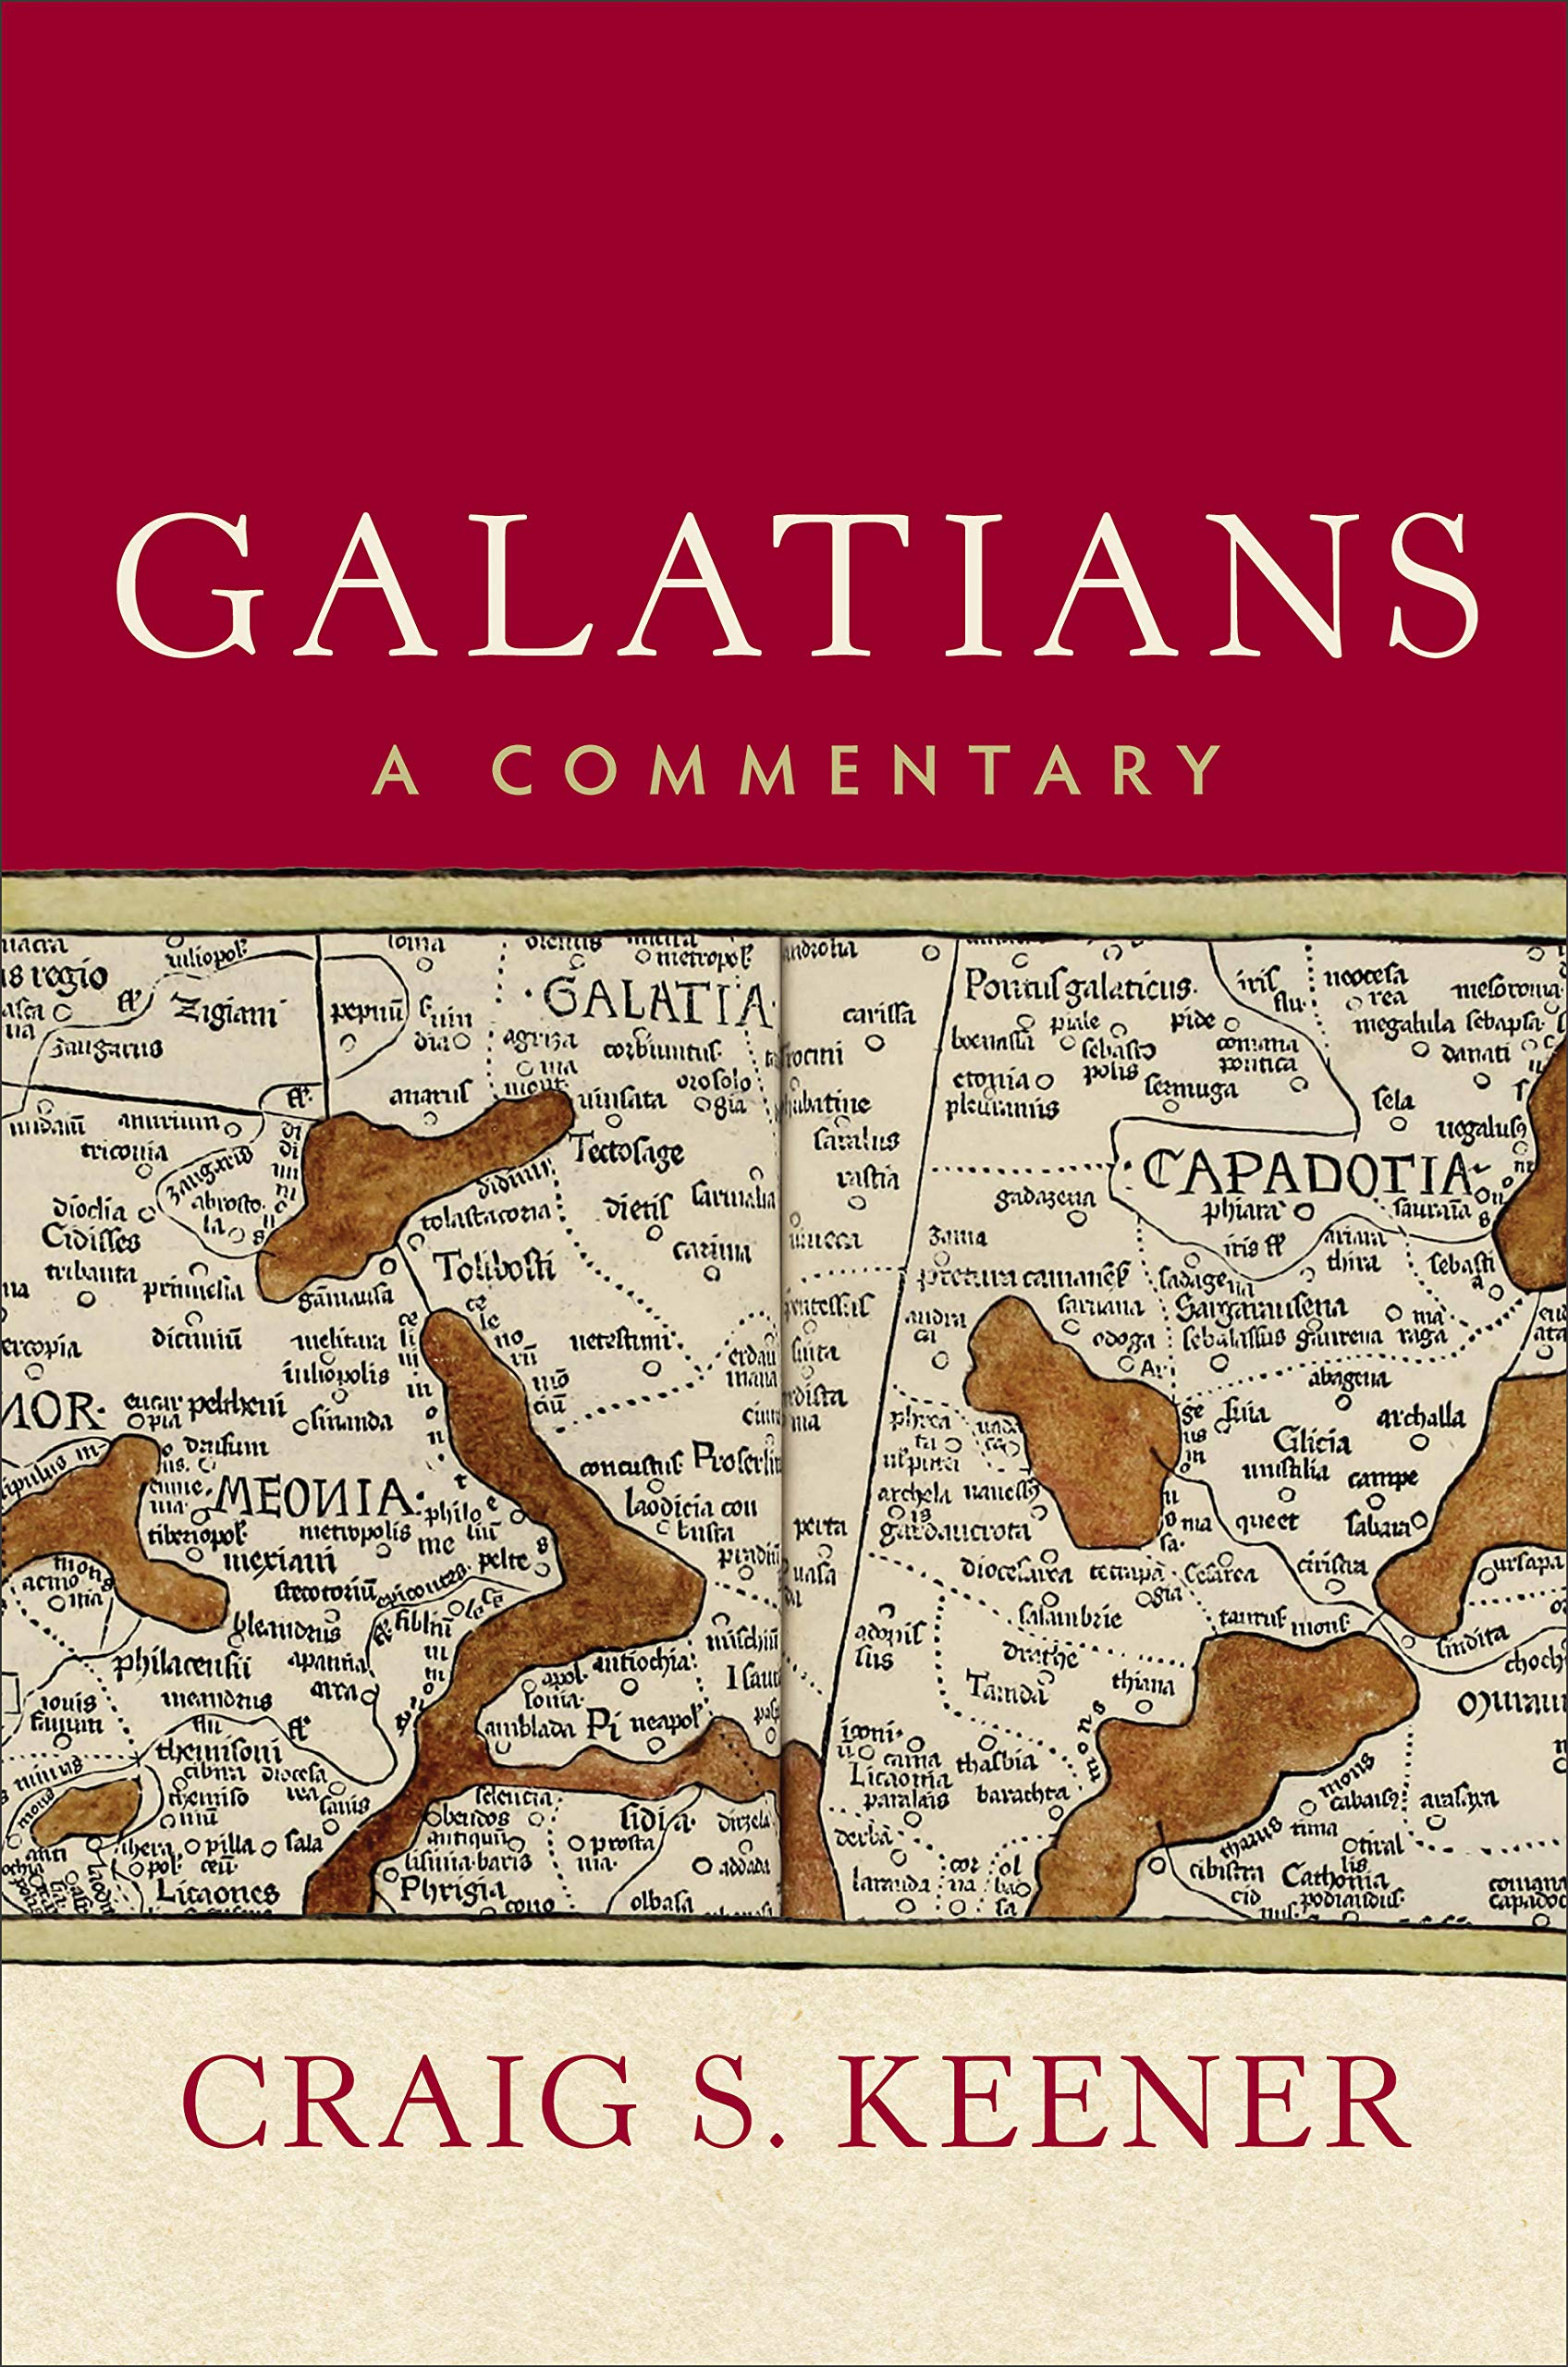 A Theological Study of The Book of Galatians